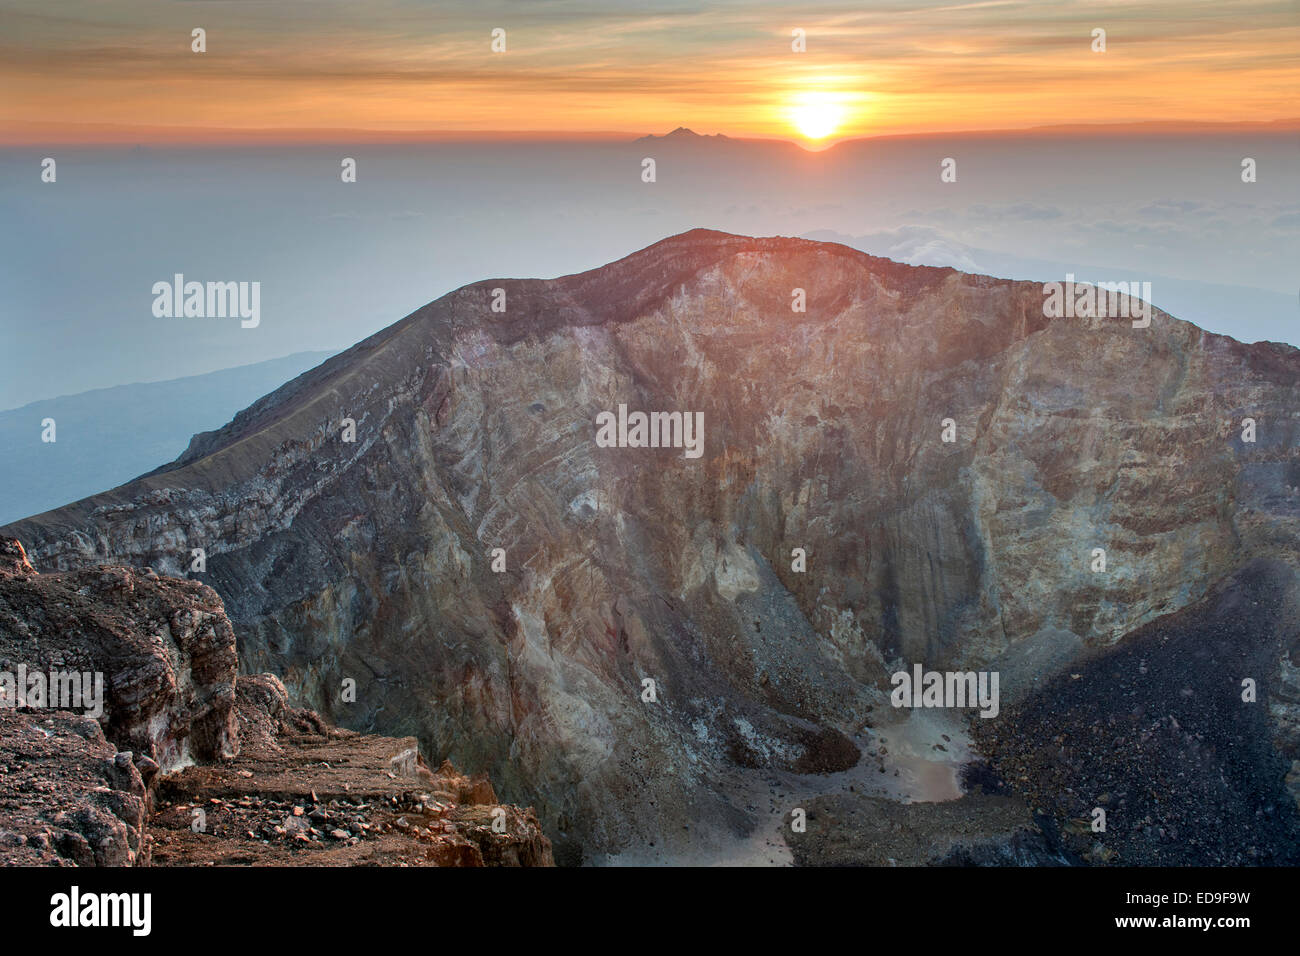 Sunrise seen from the summit of Gunung Agung (3142m), the highest volcano on the island of Bali, Indonesia. - Stock Image